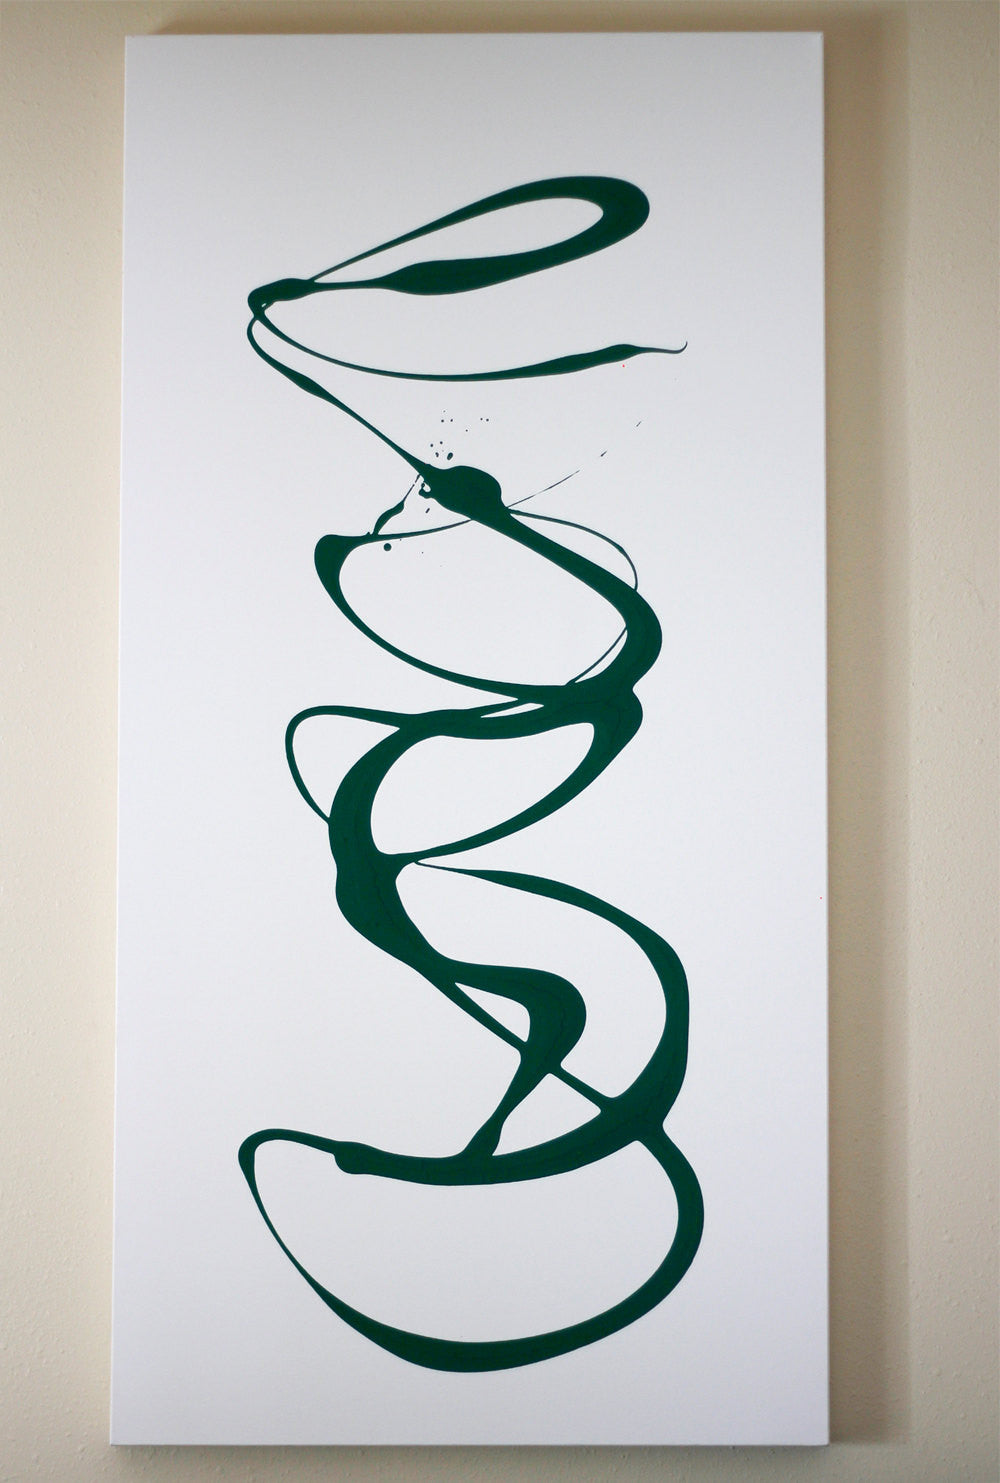 InfinI - original abstract art painting with green colors